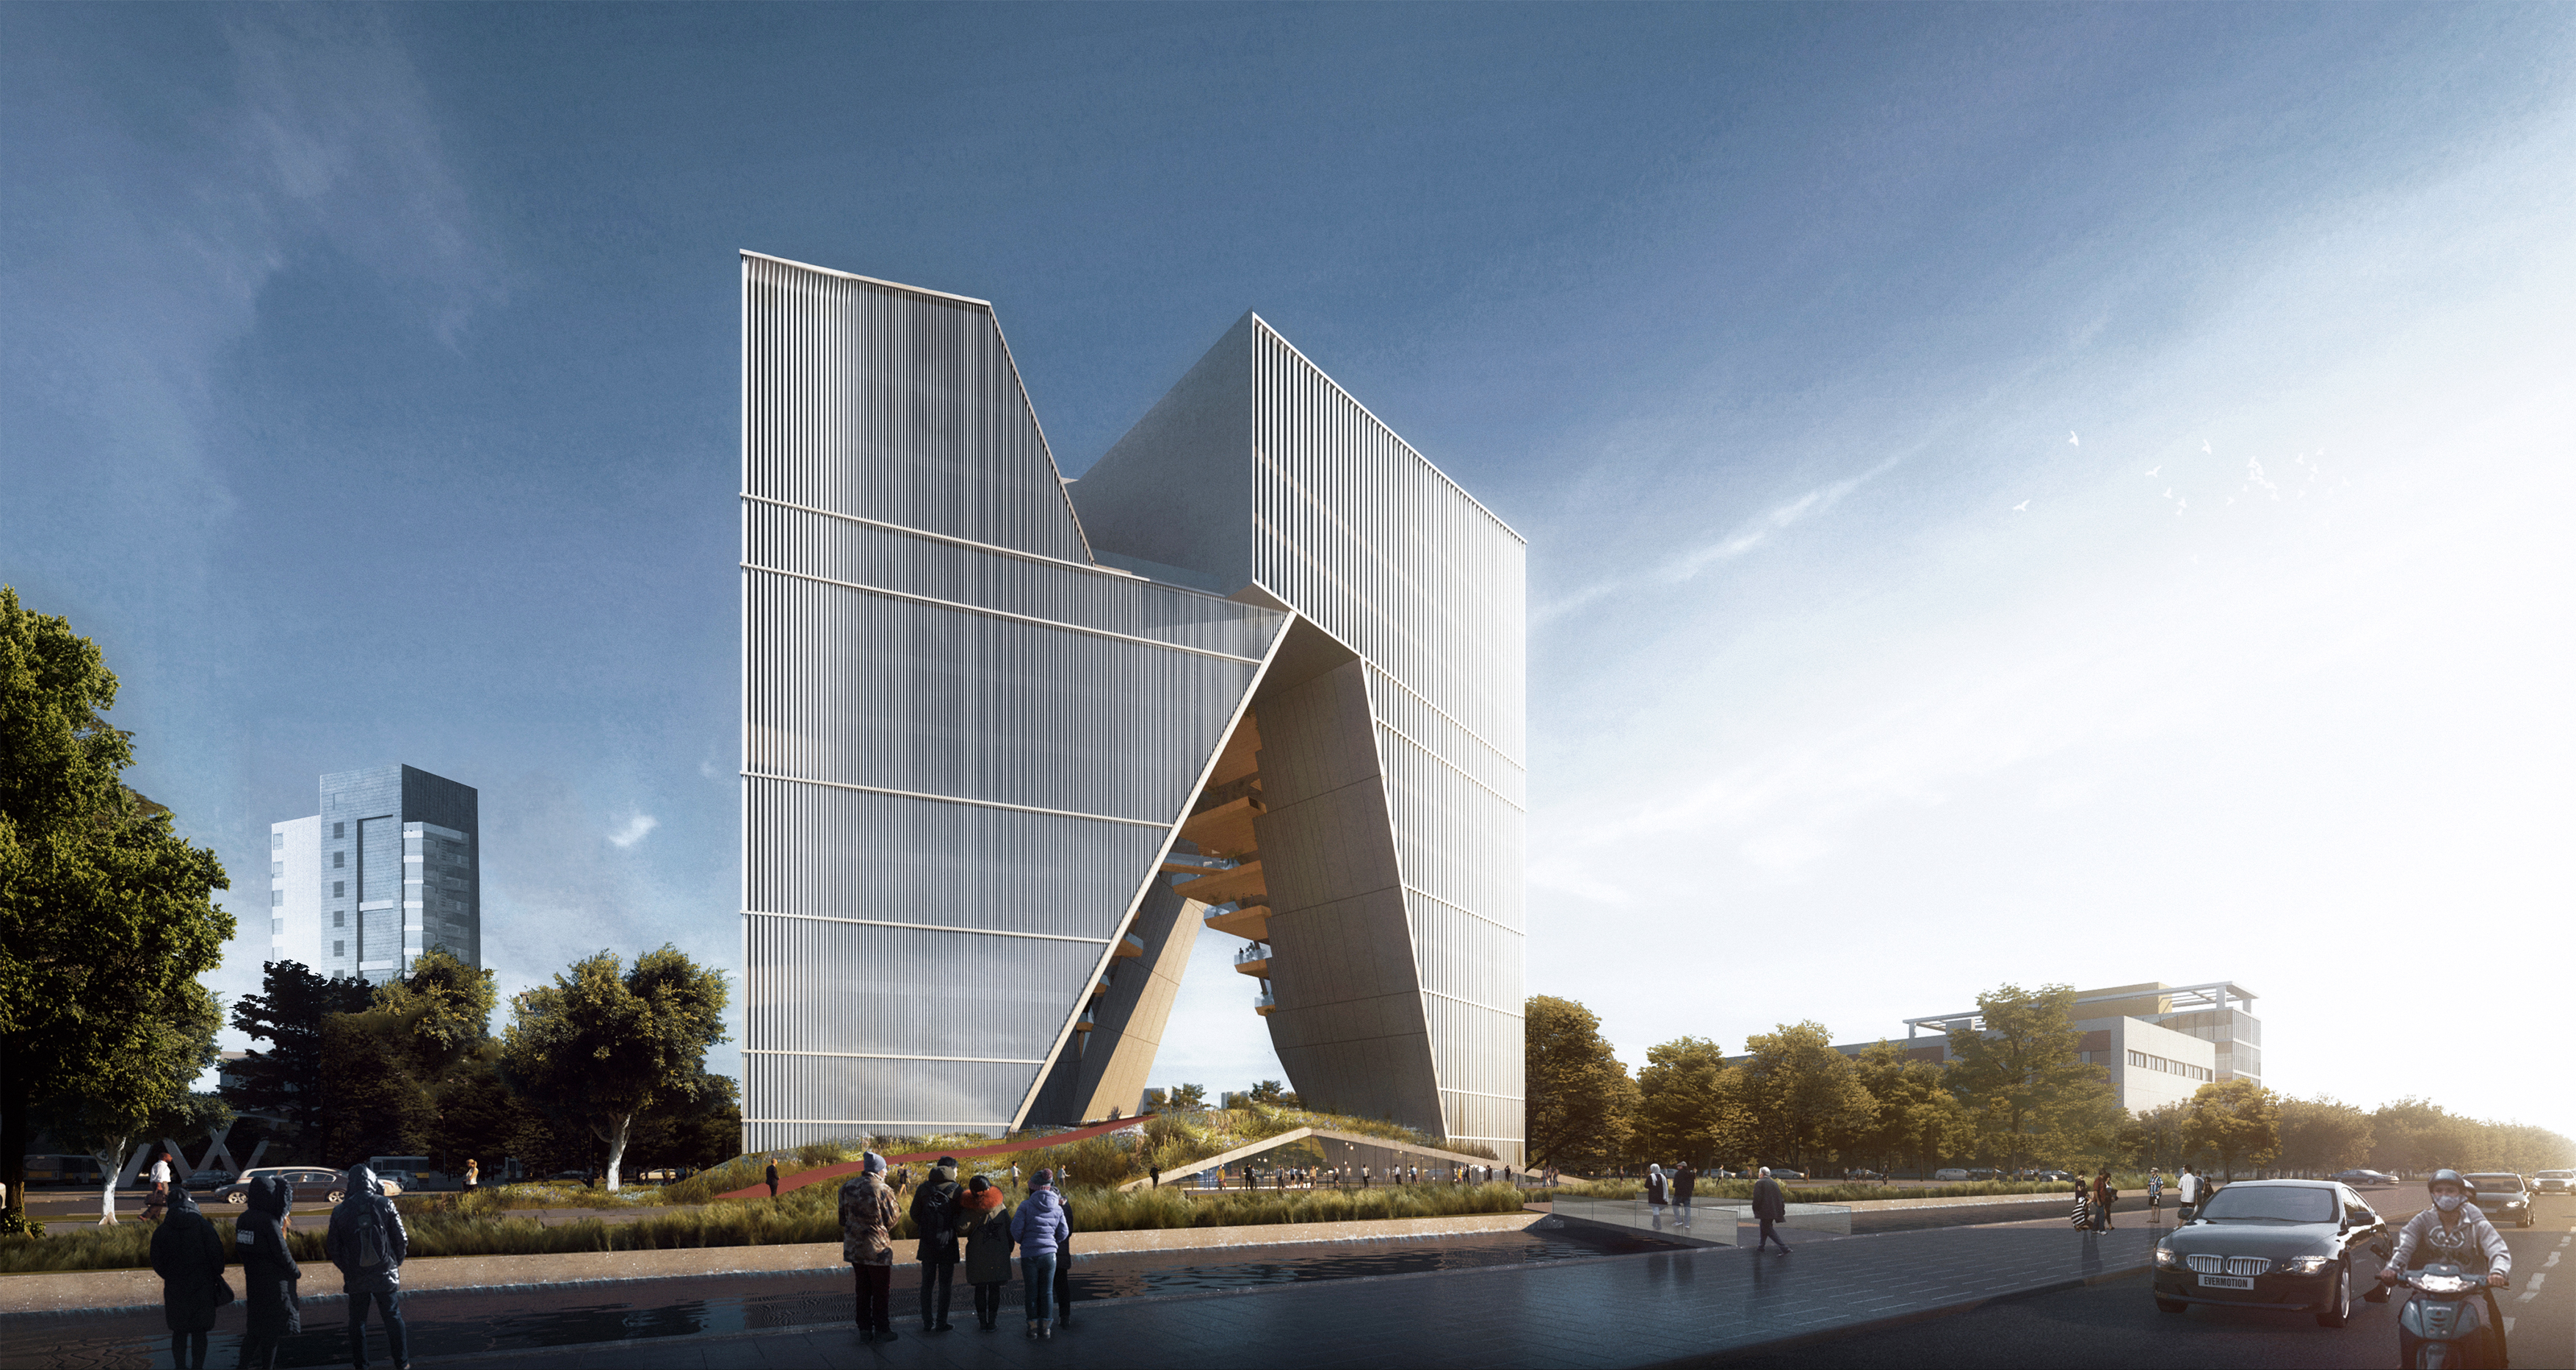 Vanke Chongqing Headquarter Design Proposal Lwkp Calvert